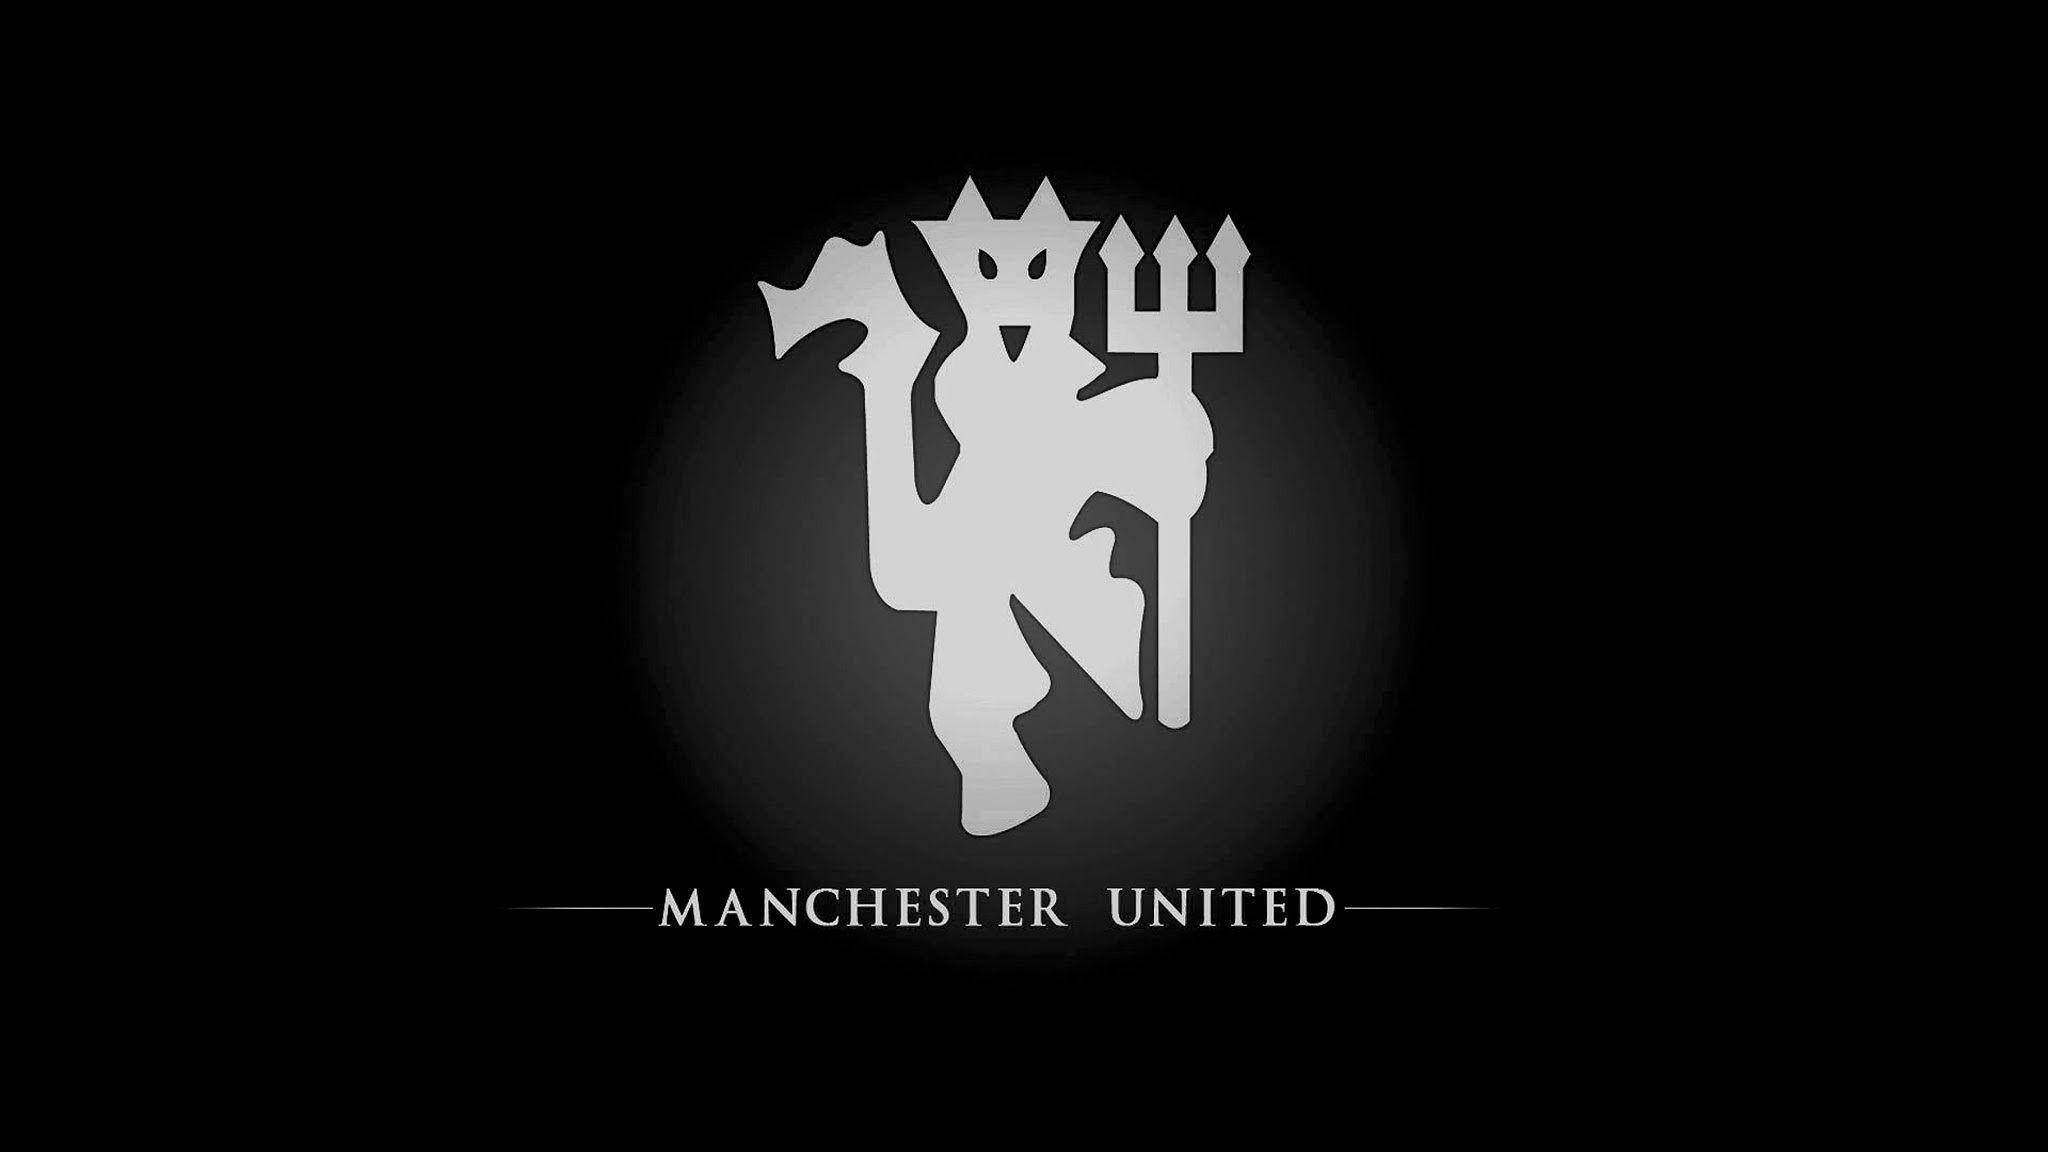 2048x1152 manchester united logo wallpapers hd 2016 wallpaper cave